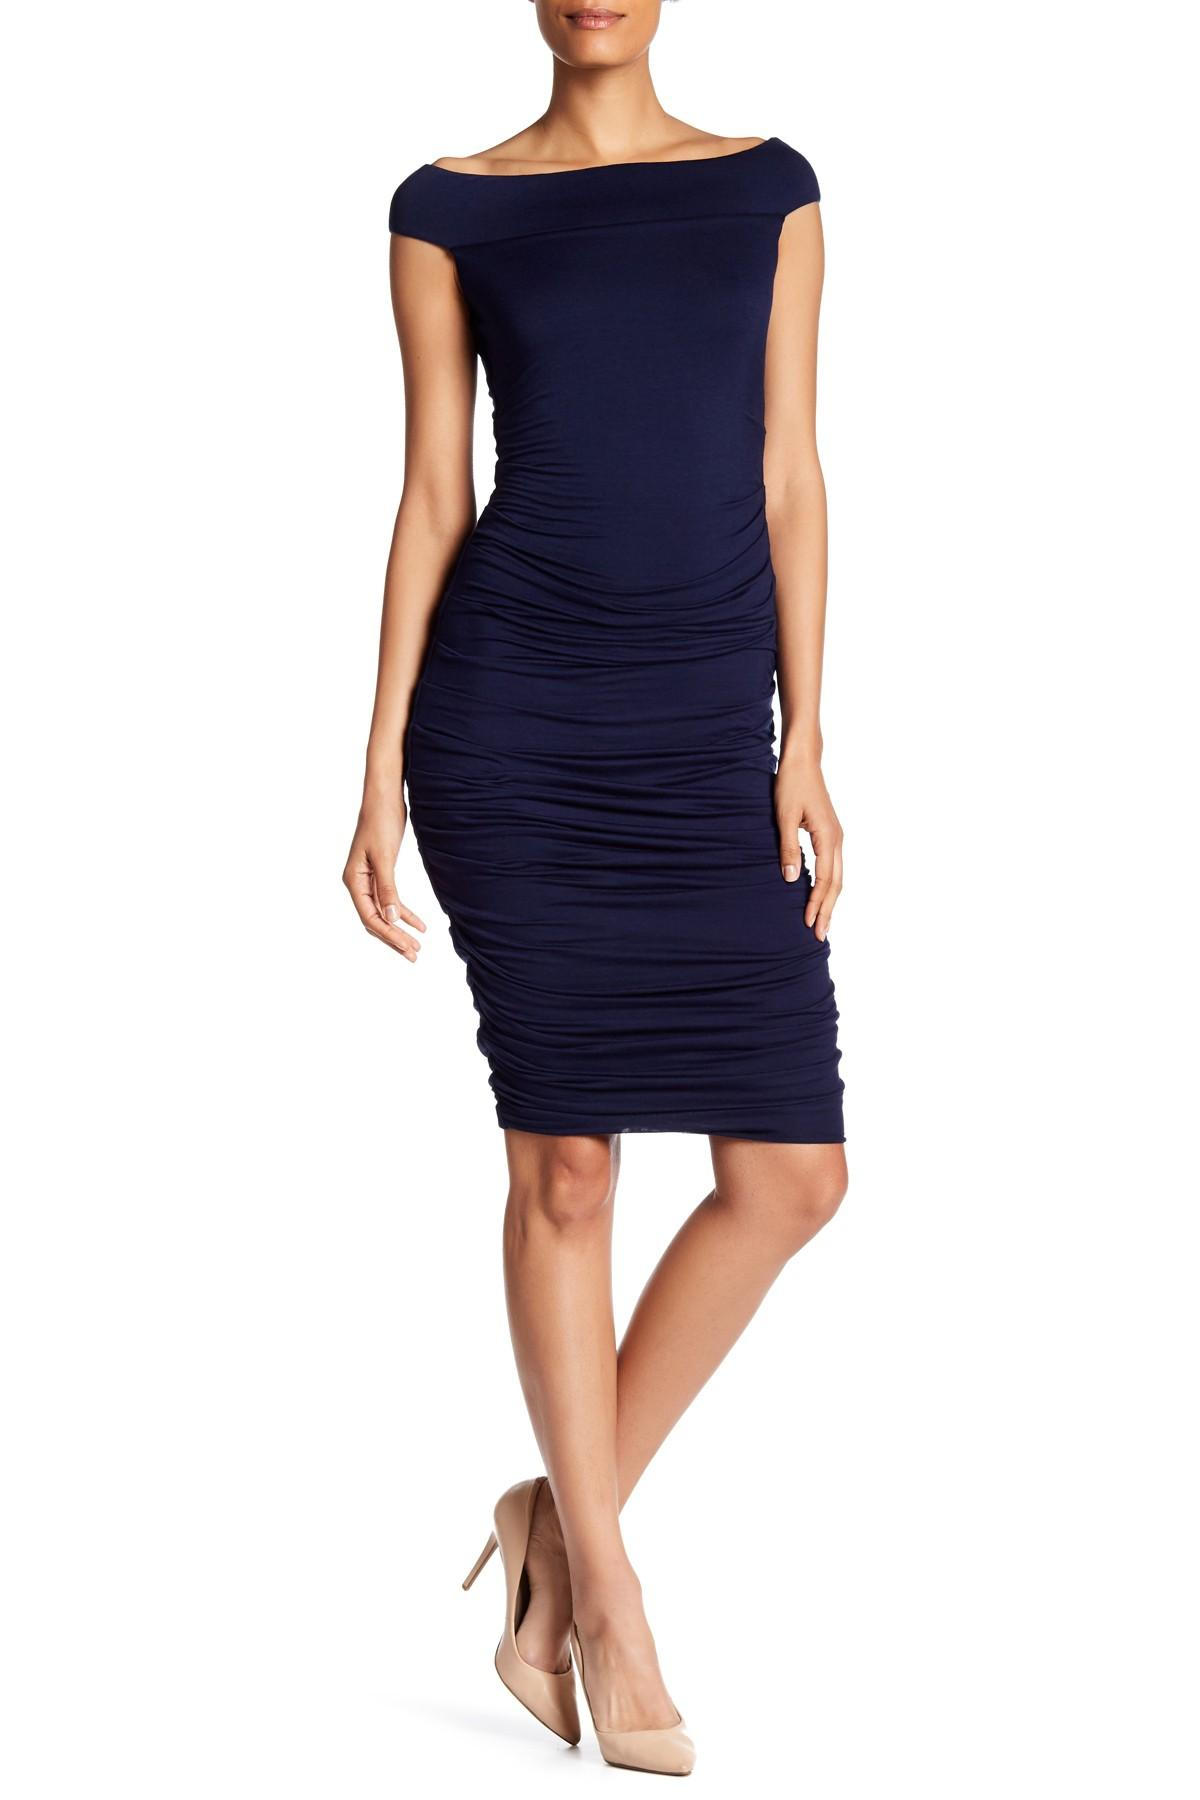 Nordstrom Women S Clothing Sale